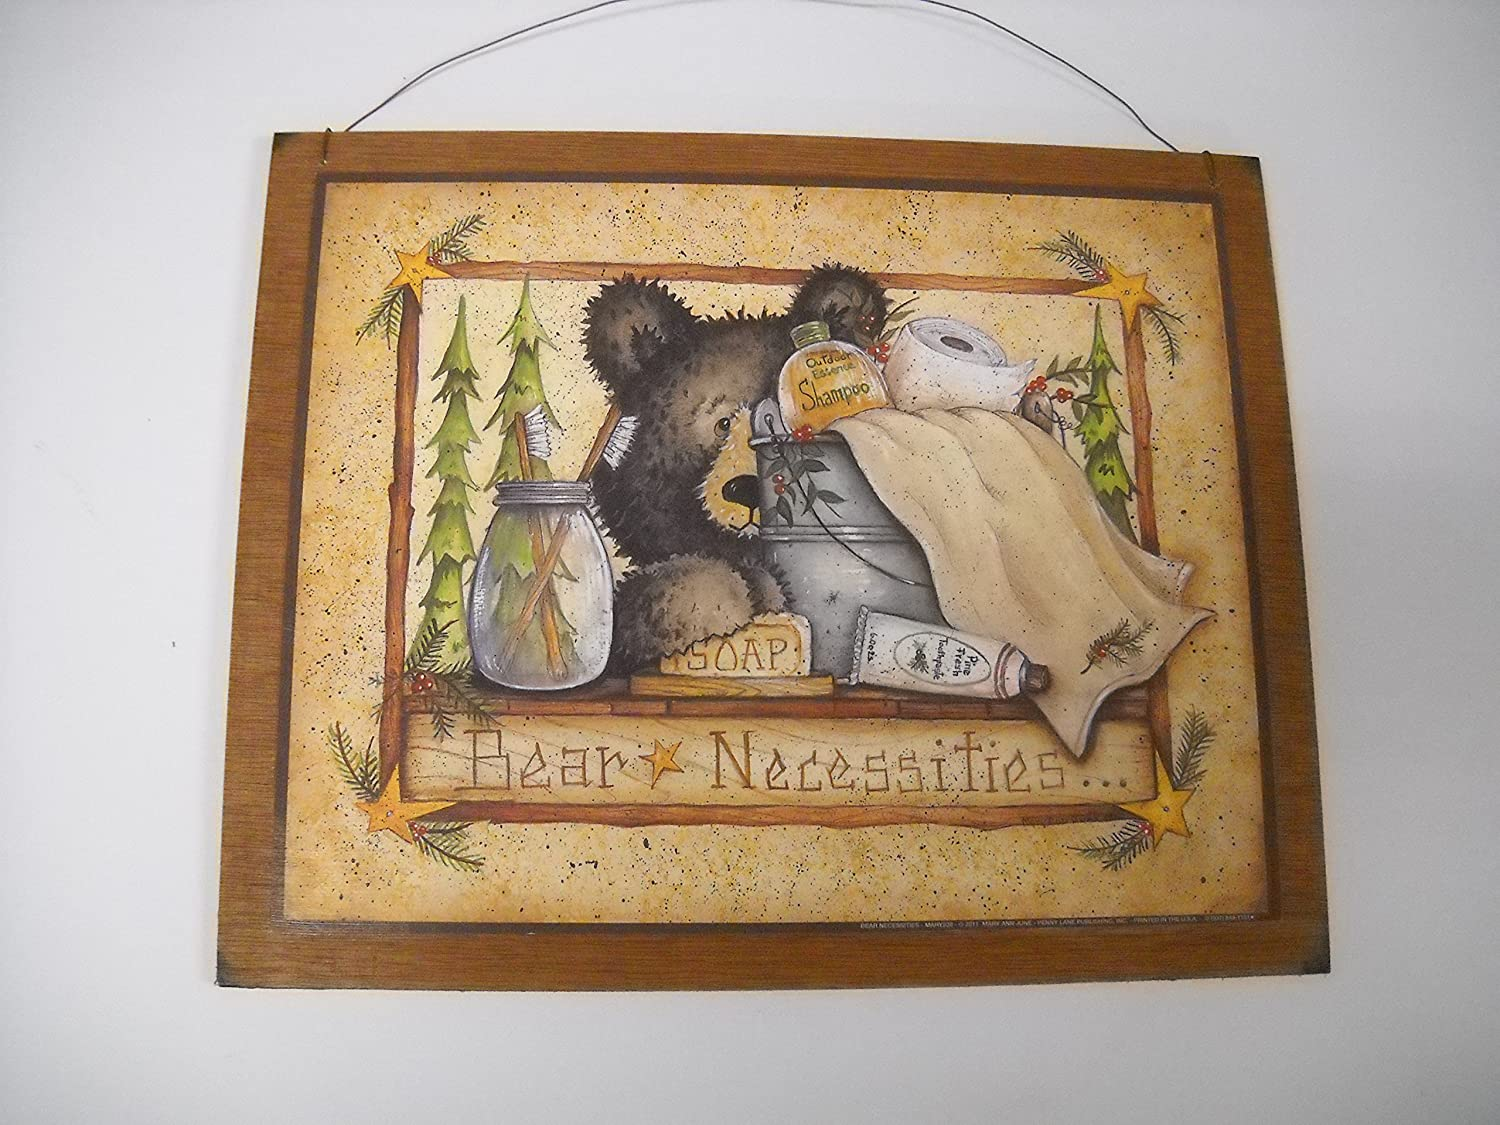 Amazon.com: Bear Necessities Wooden Country Bathroom Wall Art Sign Bath  Decor Outhouse Theme: Home U0026 Kitchen